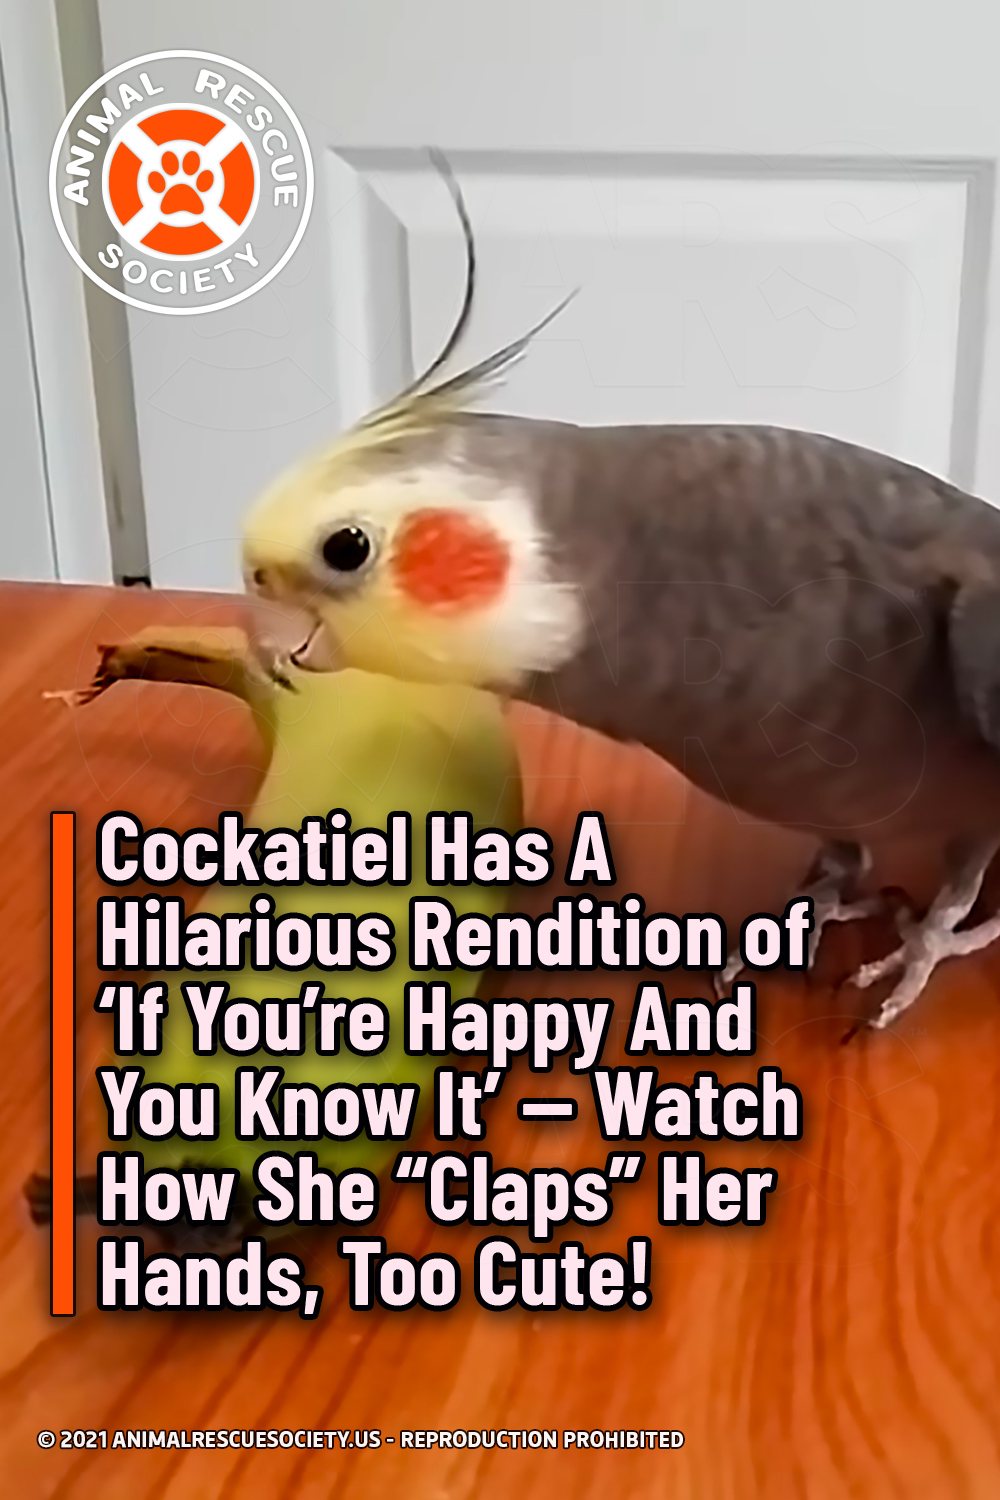 "Cockatiel Has A Hilarious Rendition of 'If You're Happy And You Know It' — Watch How She ""Claps"" Her Hands, Too Cute!"